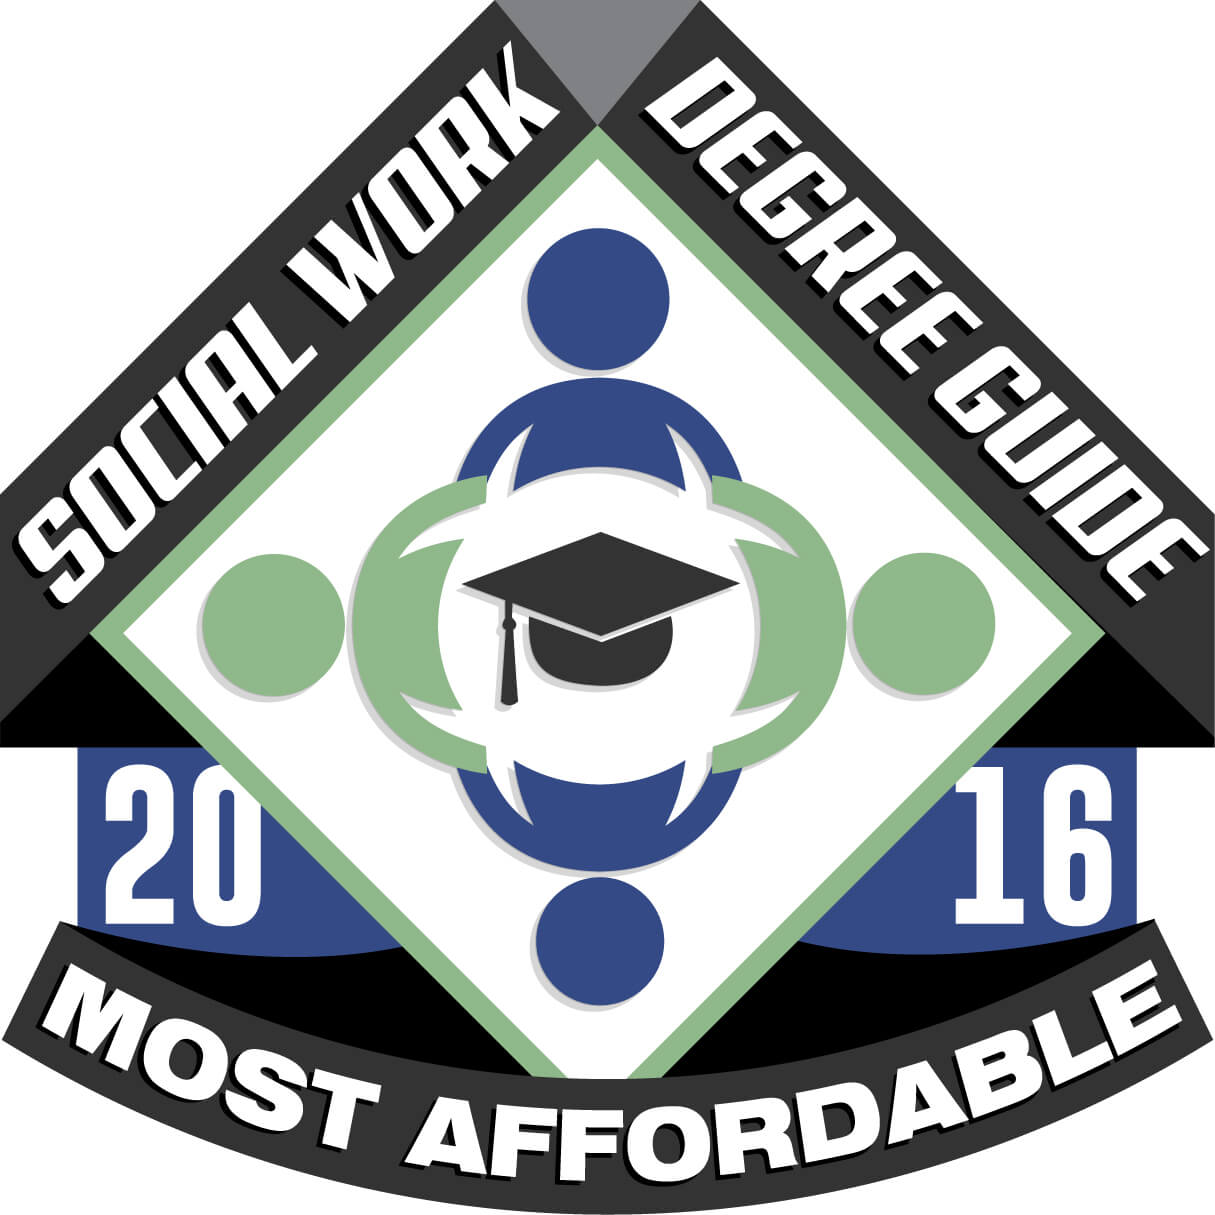 Have a BA in Computer Science, want a MSW - Masters in Social work!?